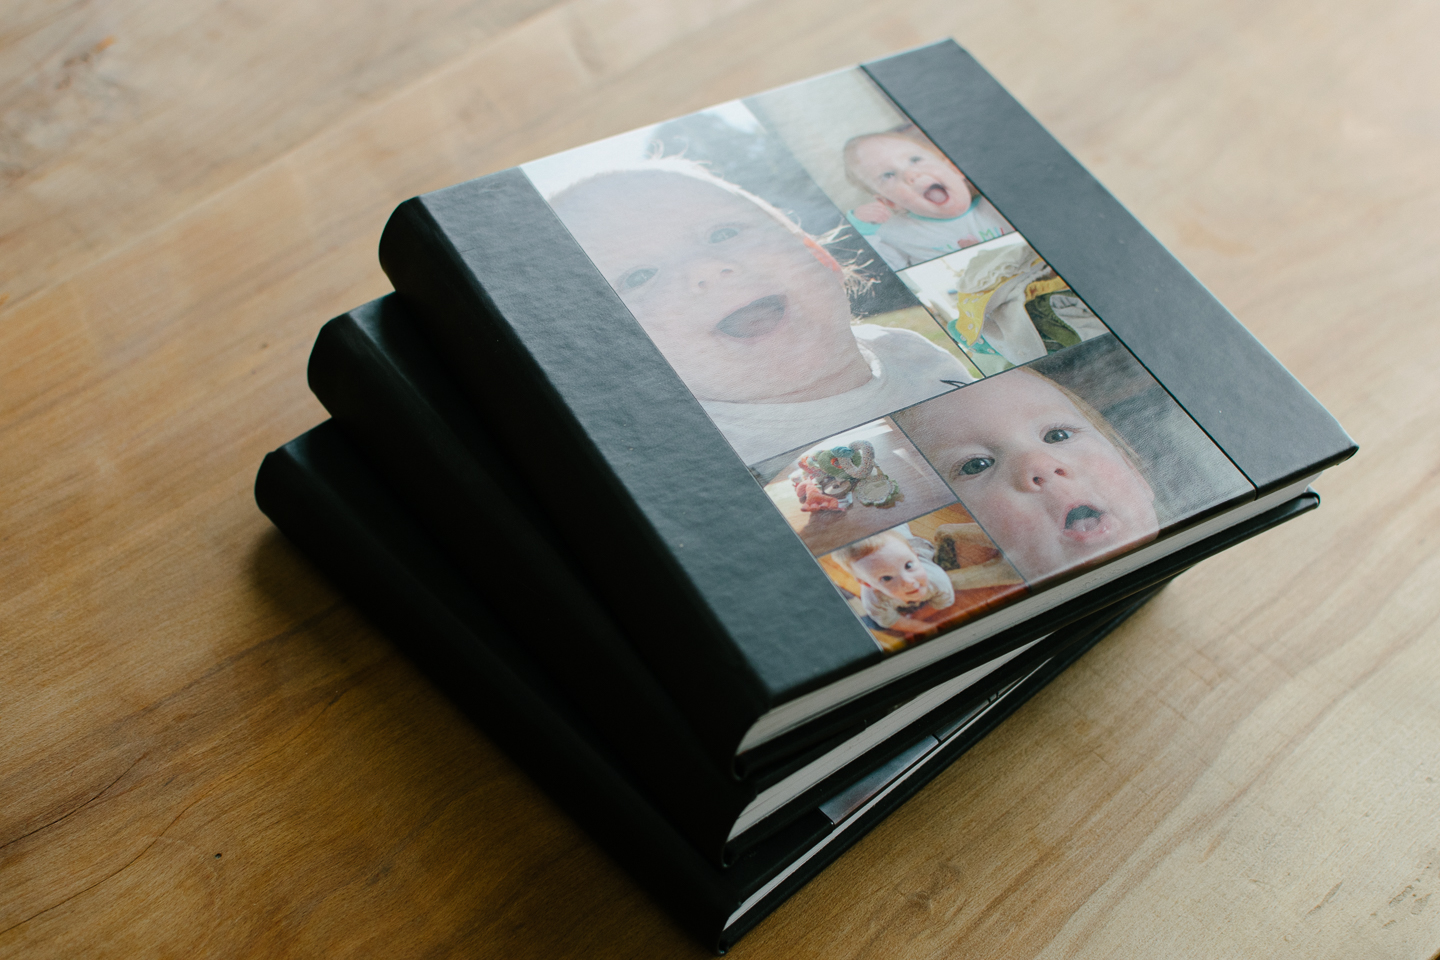 yearbook photo books from Montagebook.com